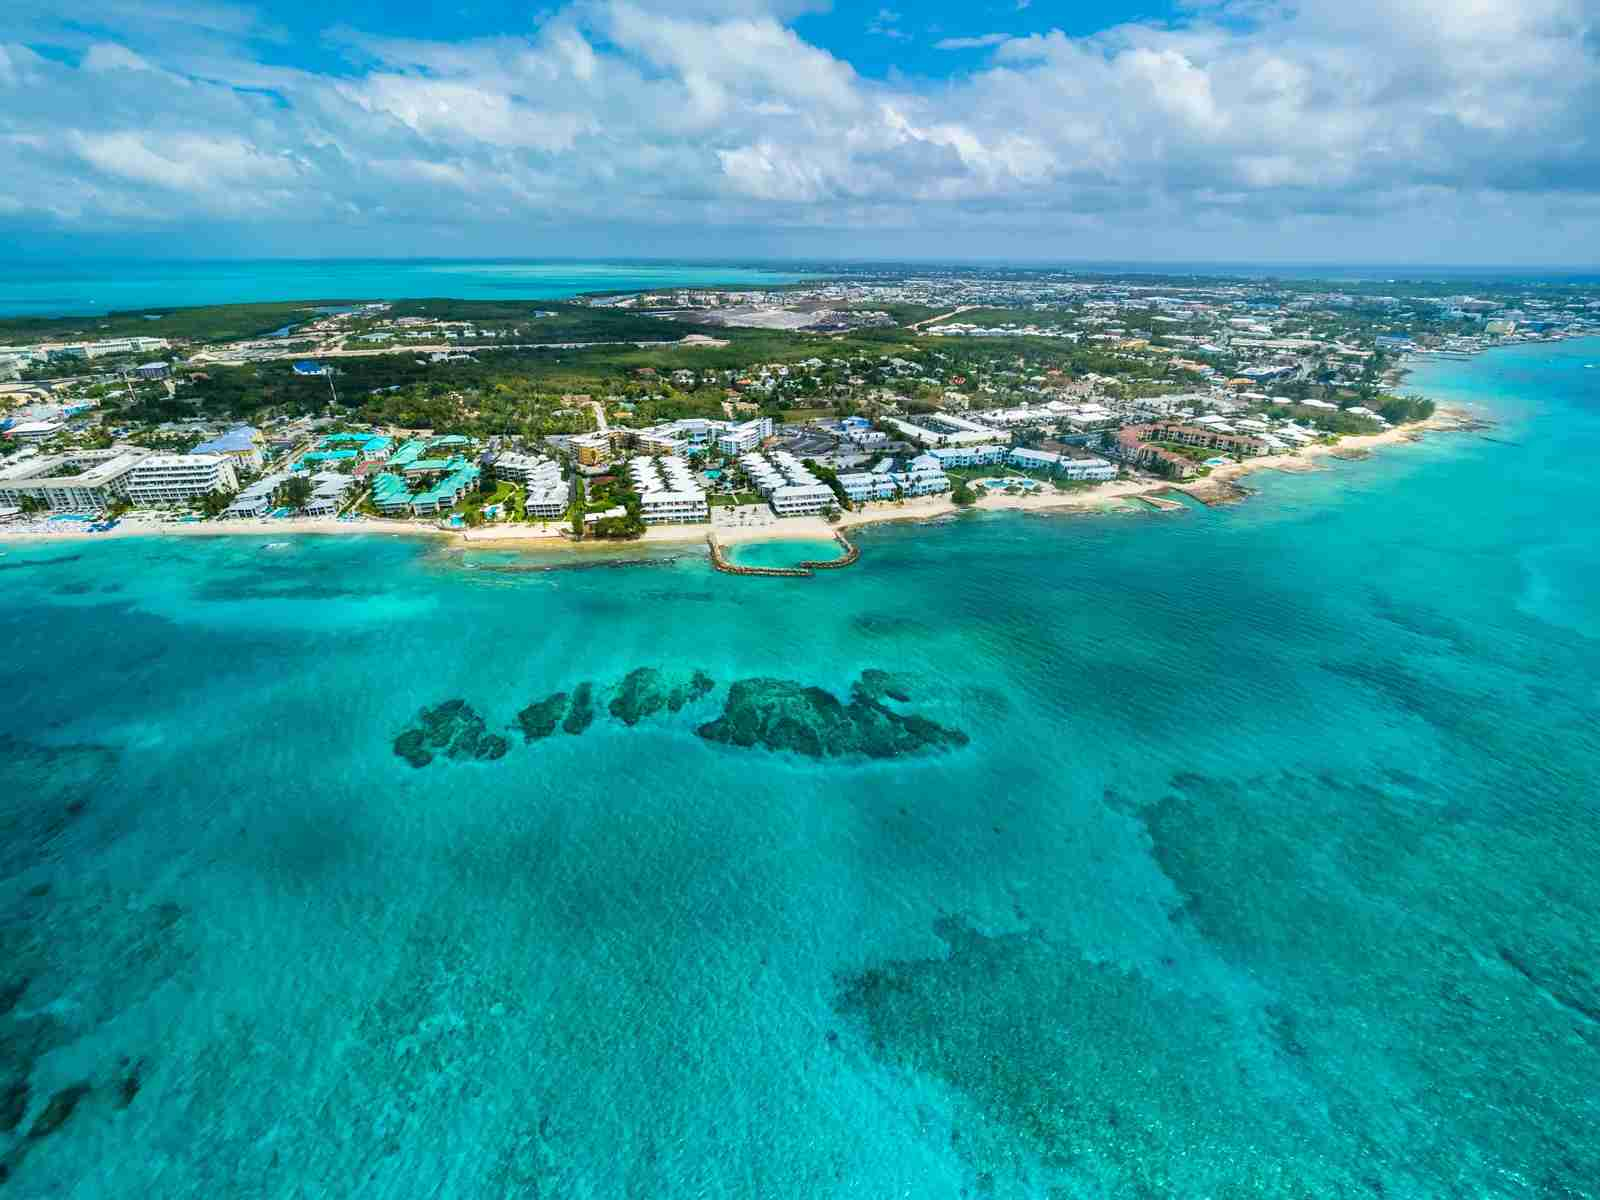 The Cayman Islands. (Photo by Westend61/Getty Images)